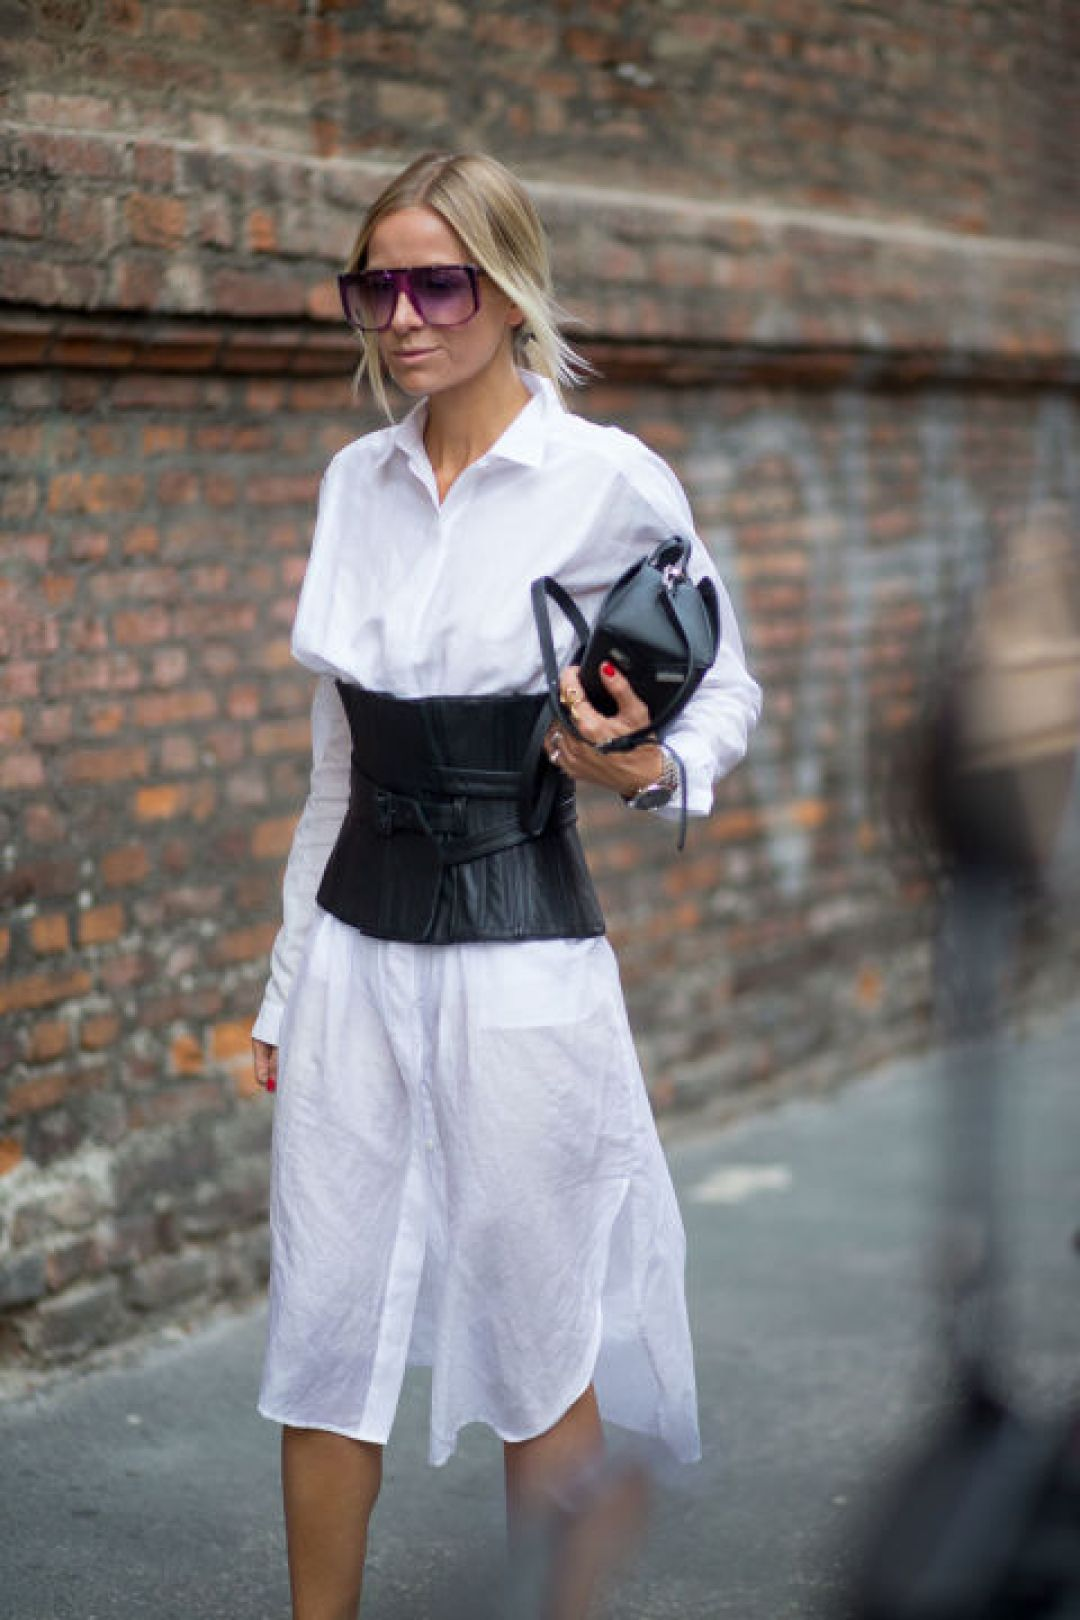 corset-trend-milan-street-style-spring-outfit-ideas